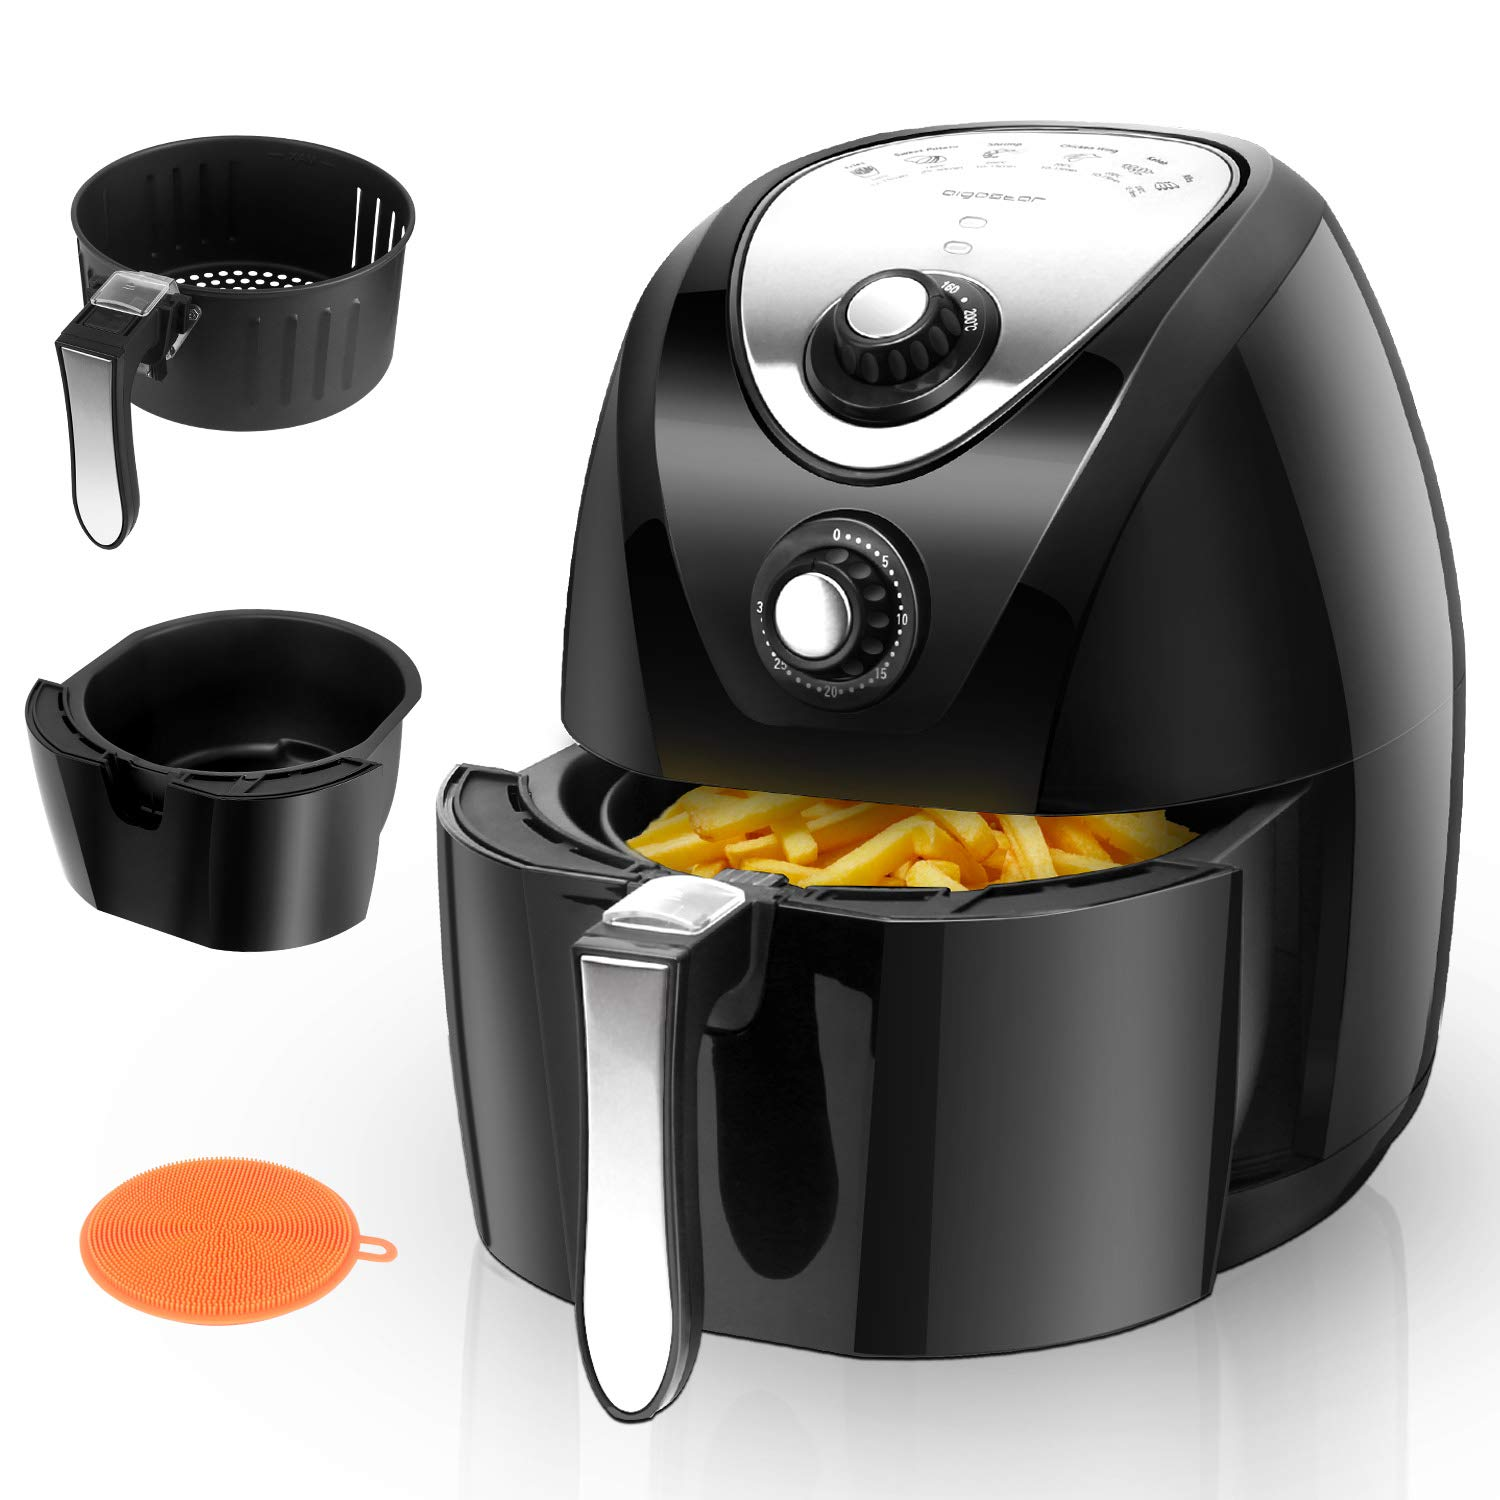 Aigostar Dragon Pro Air Fryer, 3.4Qt Electric Hot Air Fryers Oven Oilless Cooker with Detachable Non-stick Basket Automatic Timer Temperature Control for Fast Healthier Fried Food, 1400W